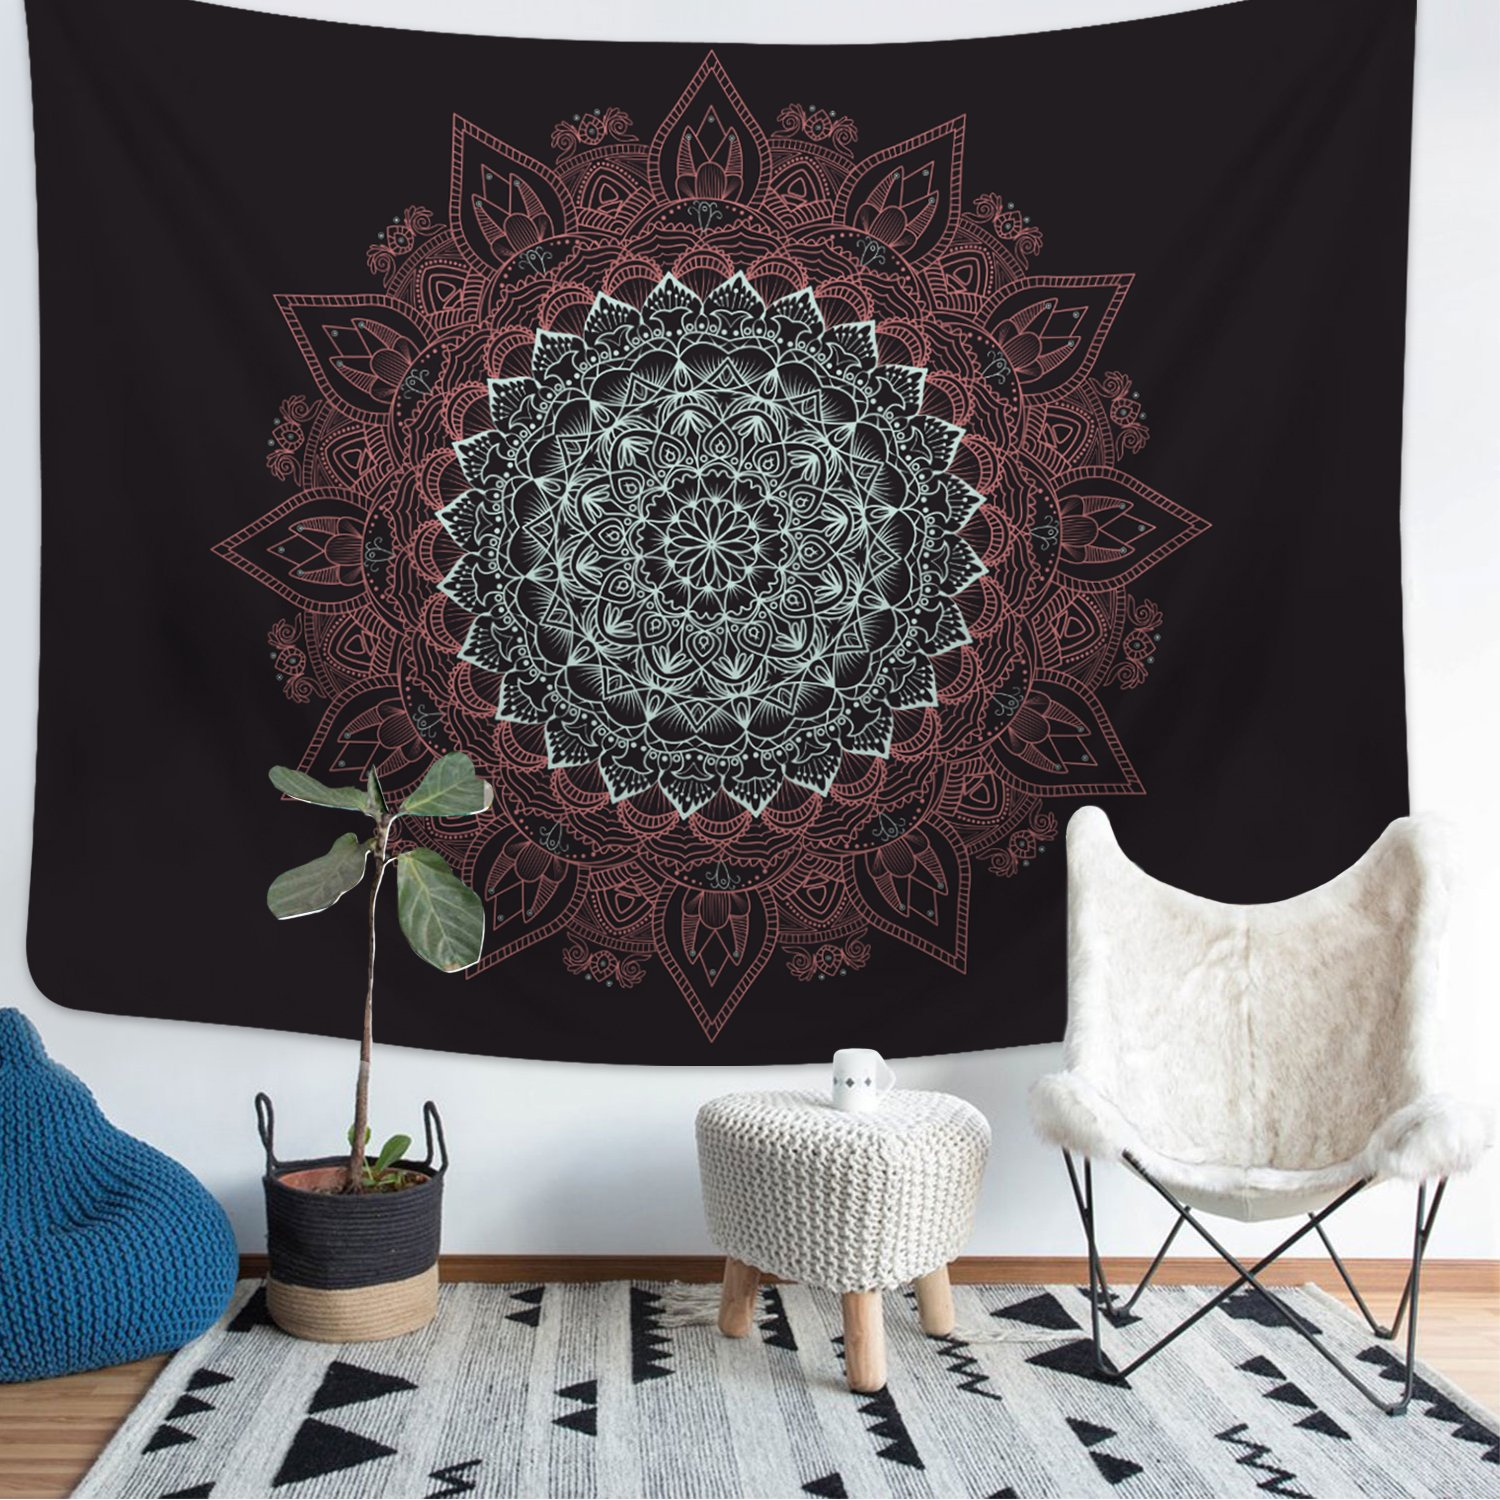 Tapestry Wall Tapestry Wall Hanging Moon and Stars Tapestry Forest Starry Night Sky Tapestry Tree Tapestry Blue Tapestry Star Tapestry Space Tapestry for Home Room Decor (Black, L-59.1''x82.7'')